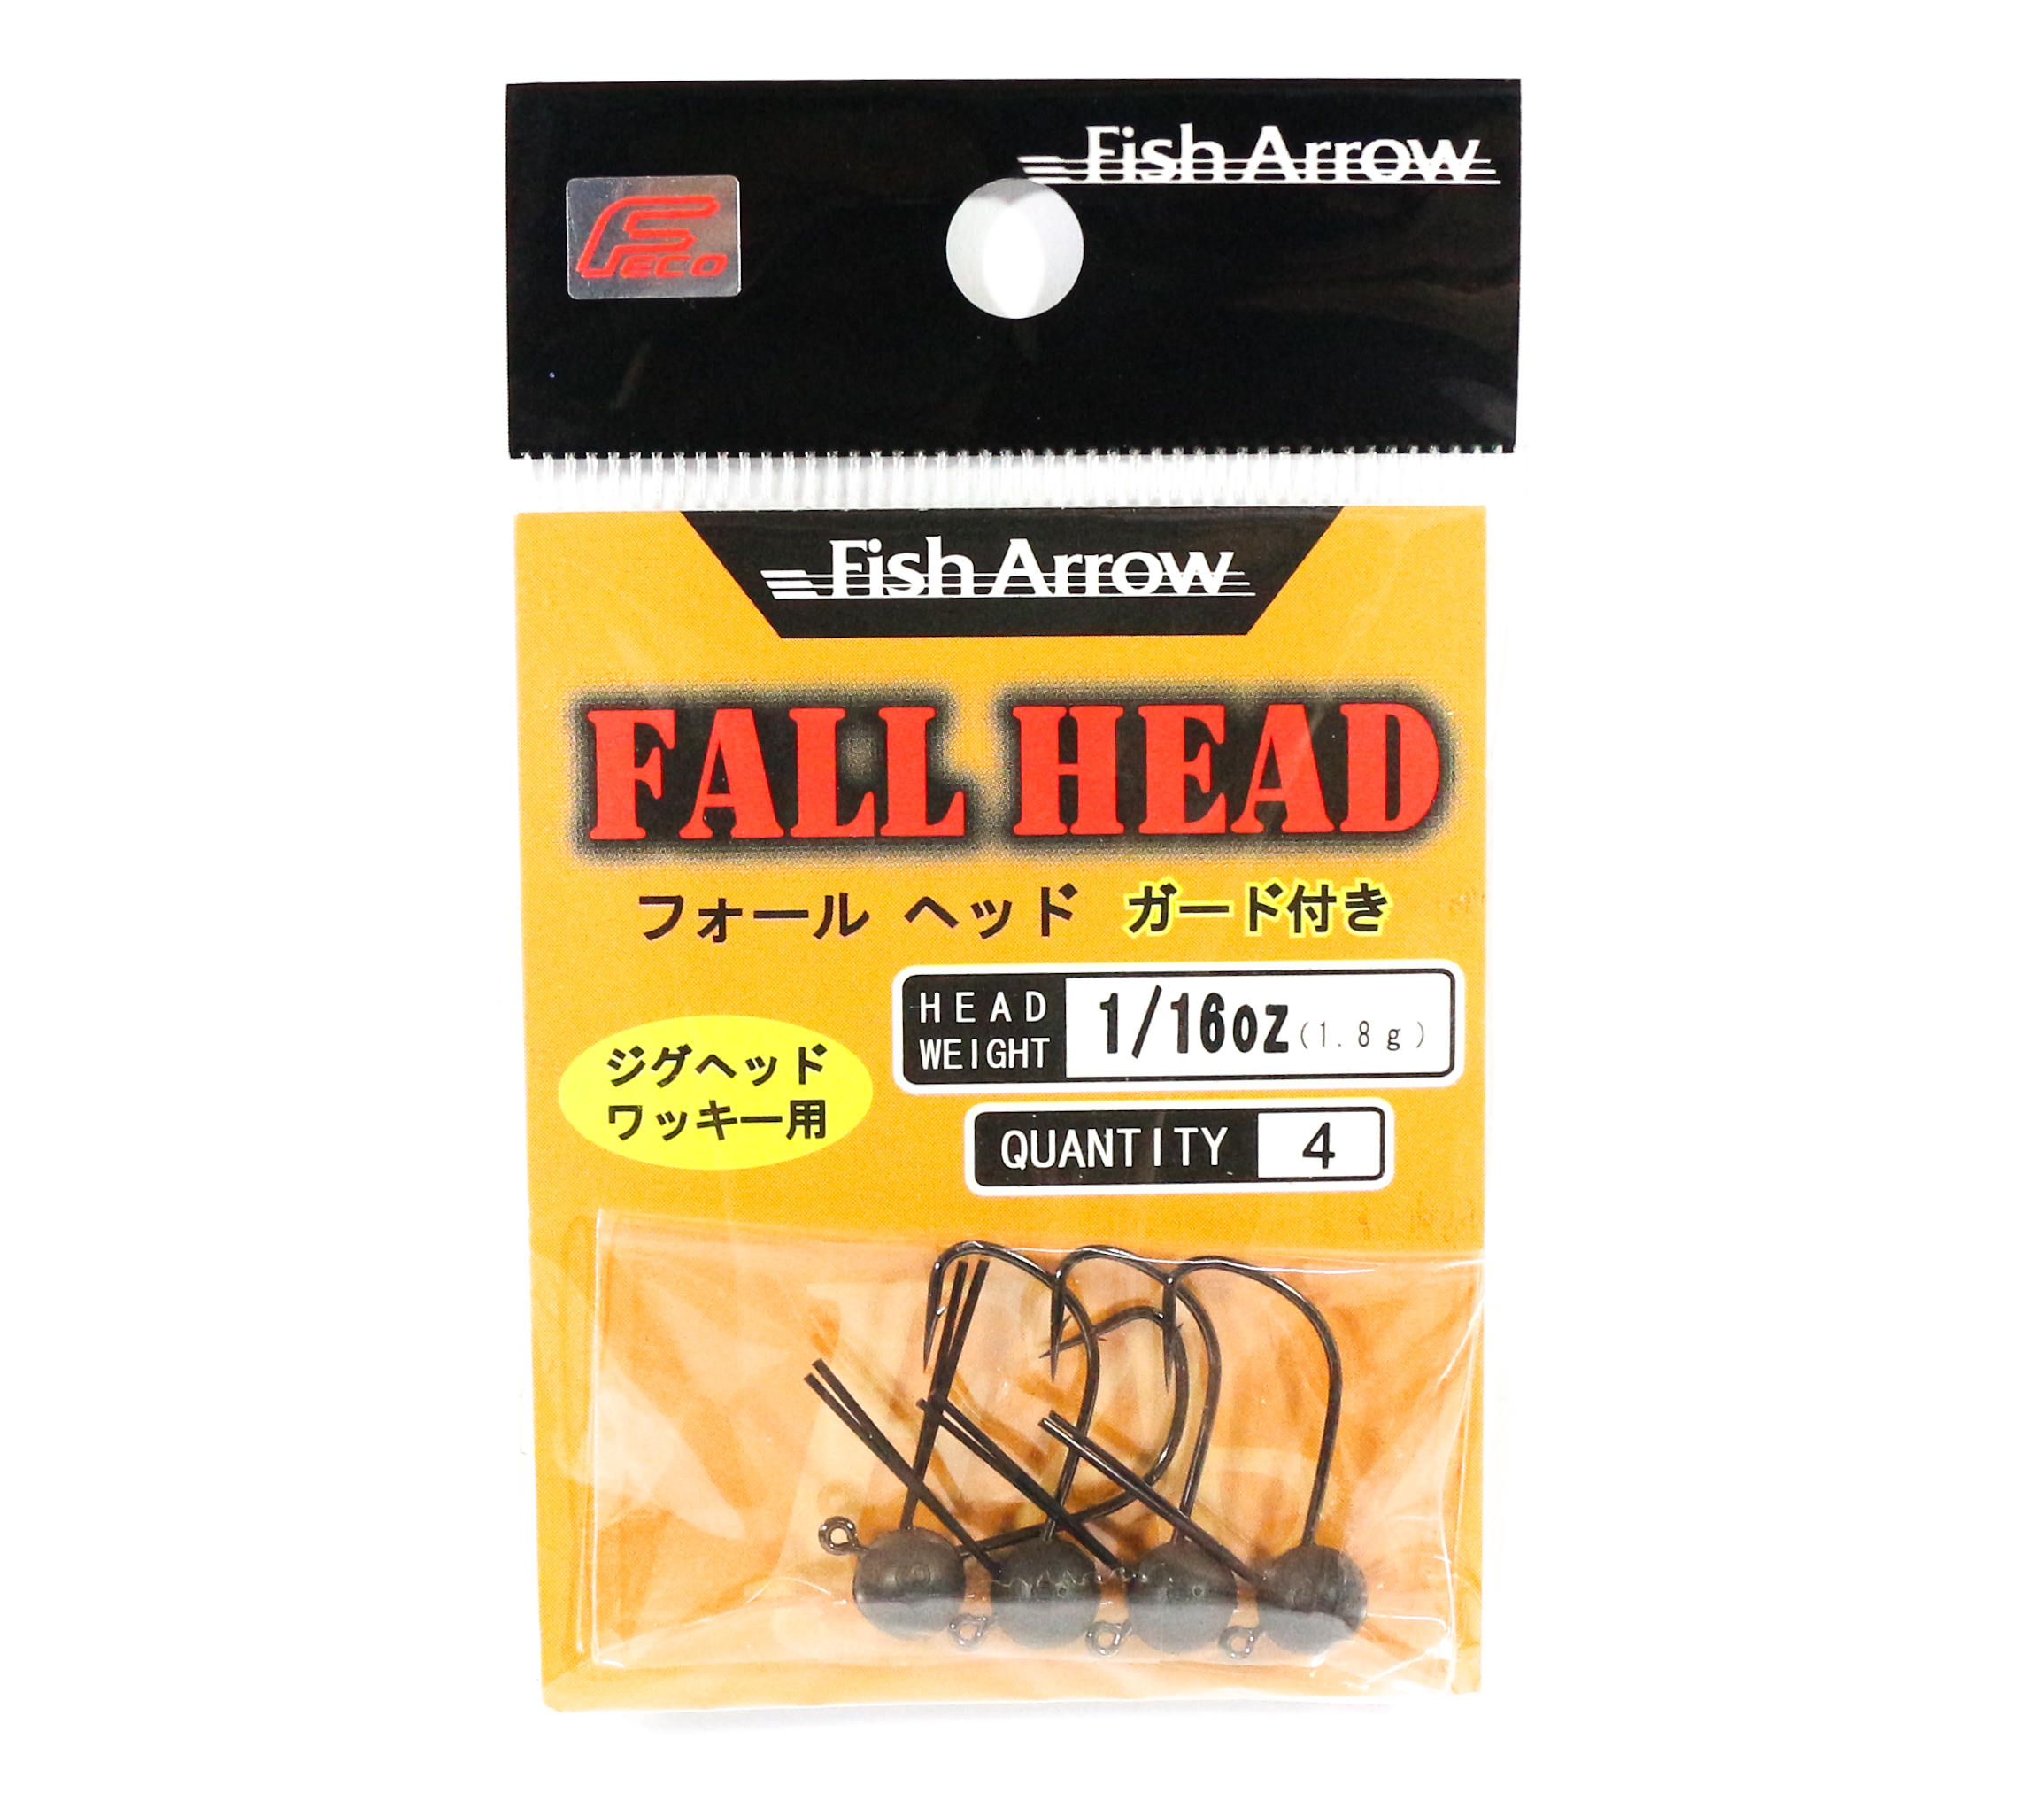 Fish Arrow Jig Head Fall Head with Guard 1.8 grams Size 5 4 Pc per pack (2052)